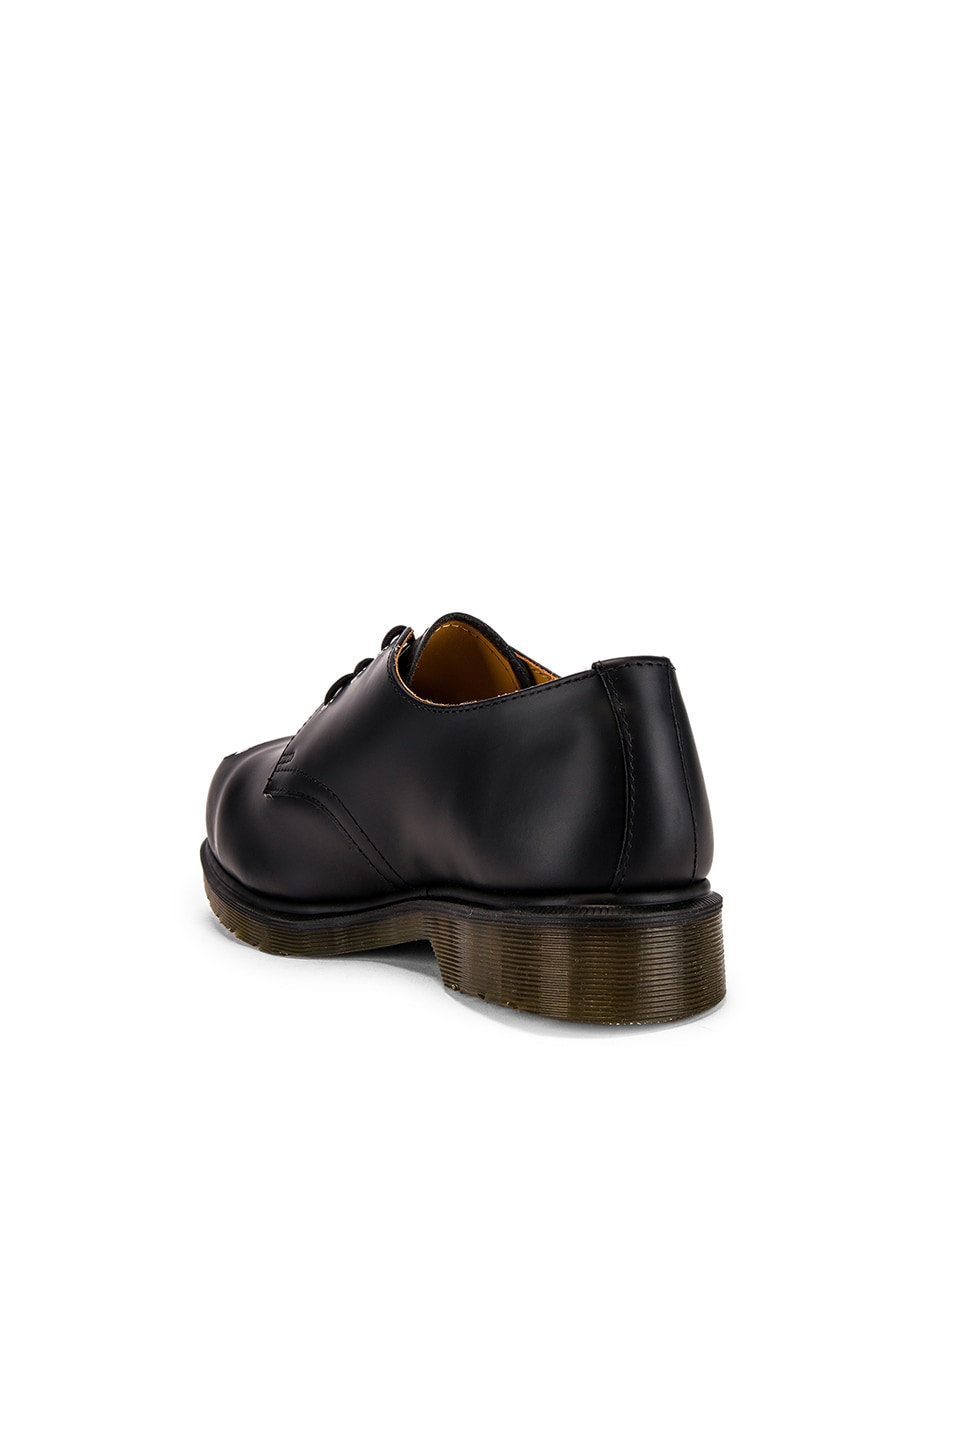 Image 3 of Raf Simons x Dr. Martens Asymmetric Cut Out Steel Shoe in Black